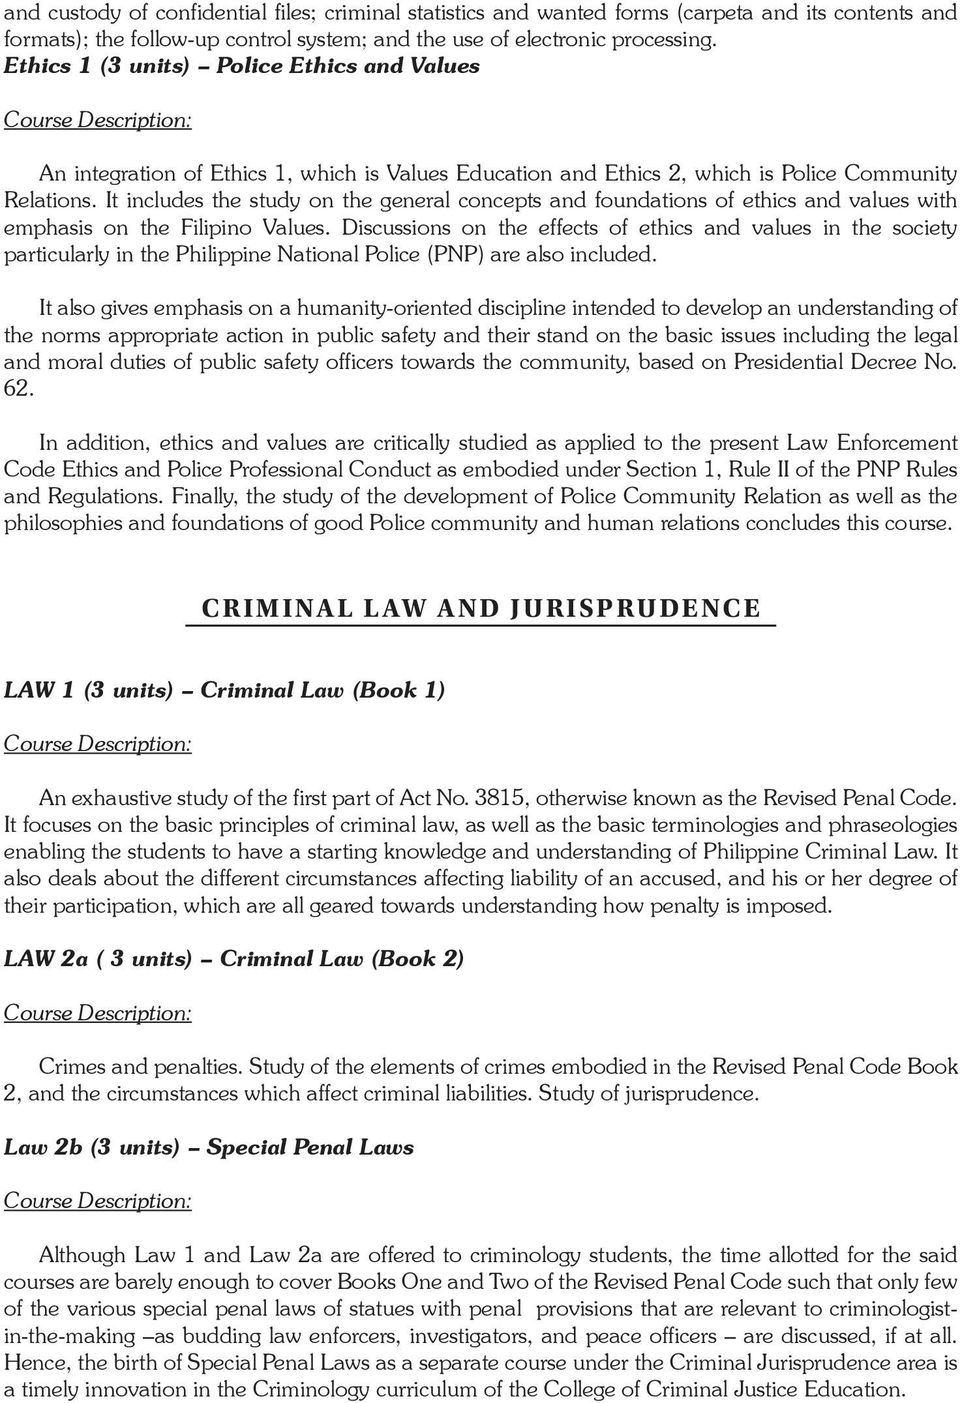 Criminal Law Book 1 And 2